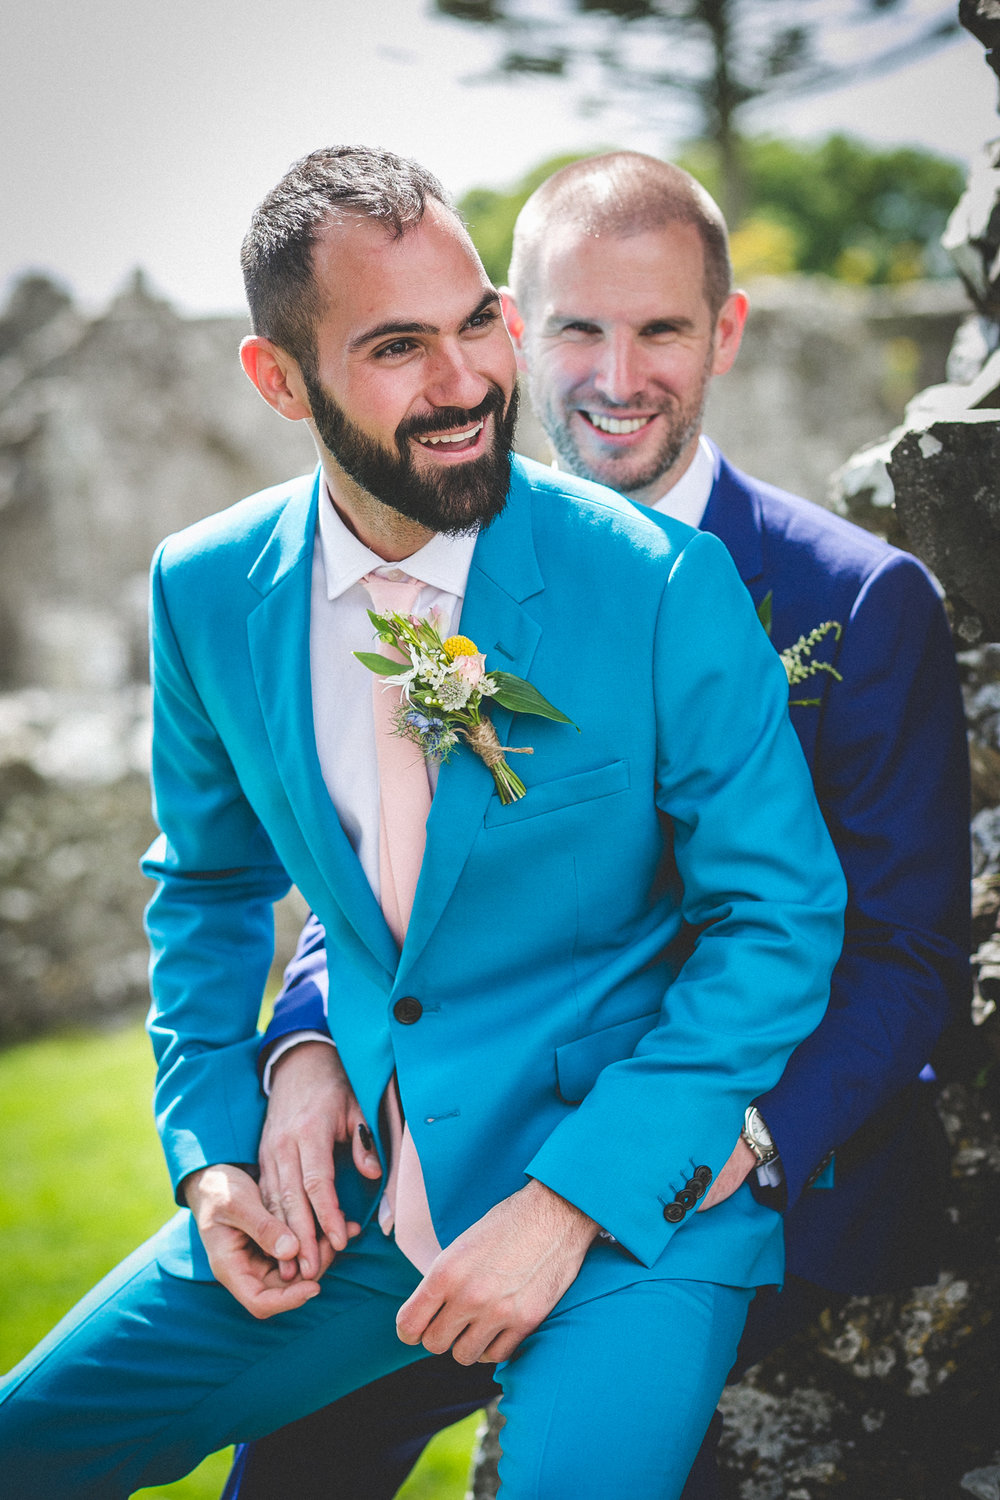 Gay weddings Ireland Millhouse-56.jpg